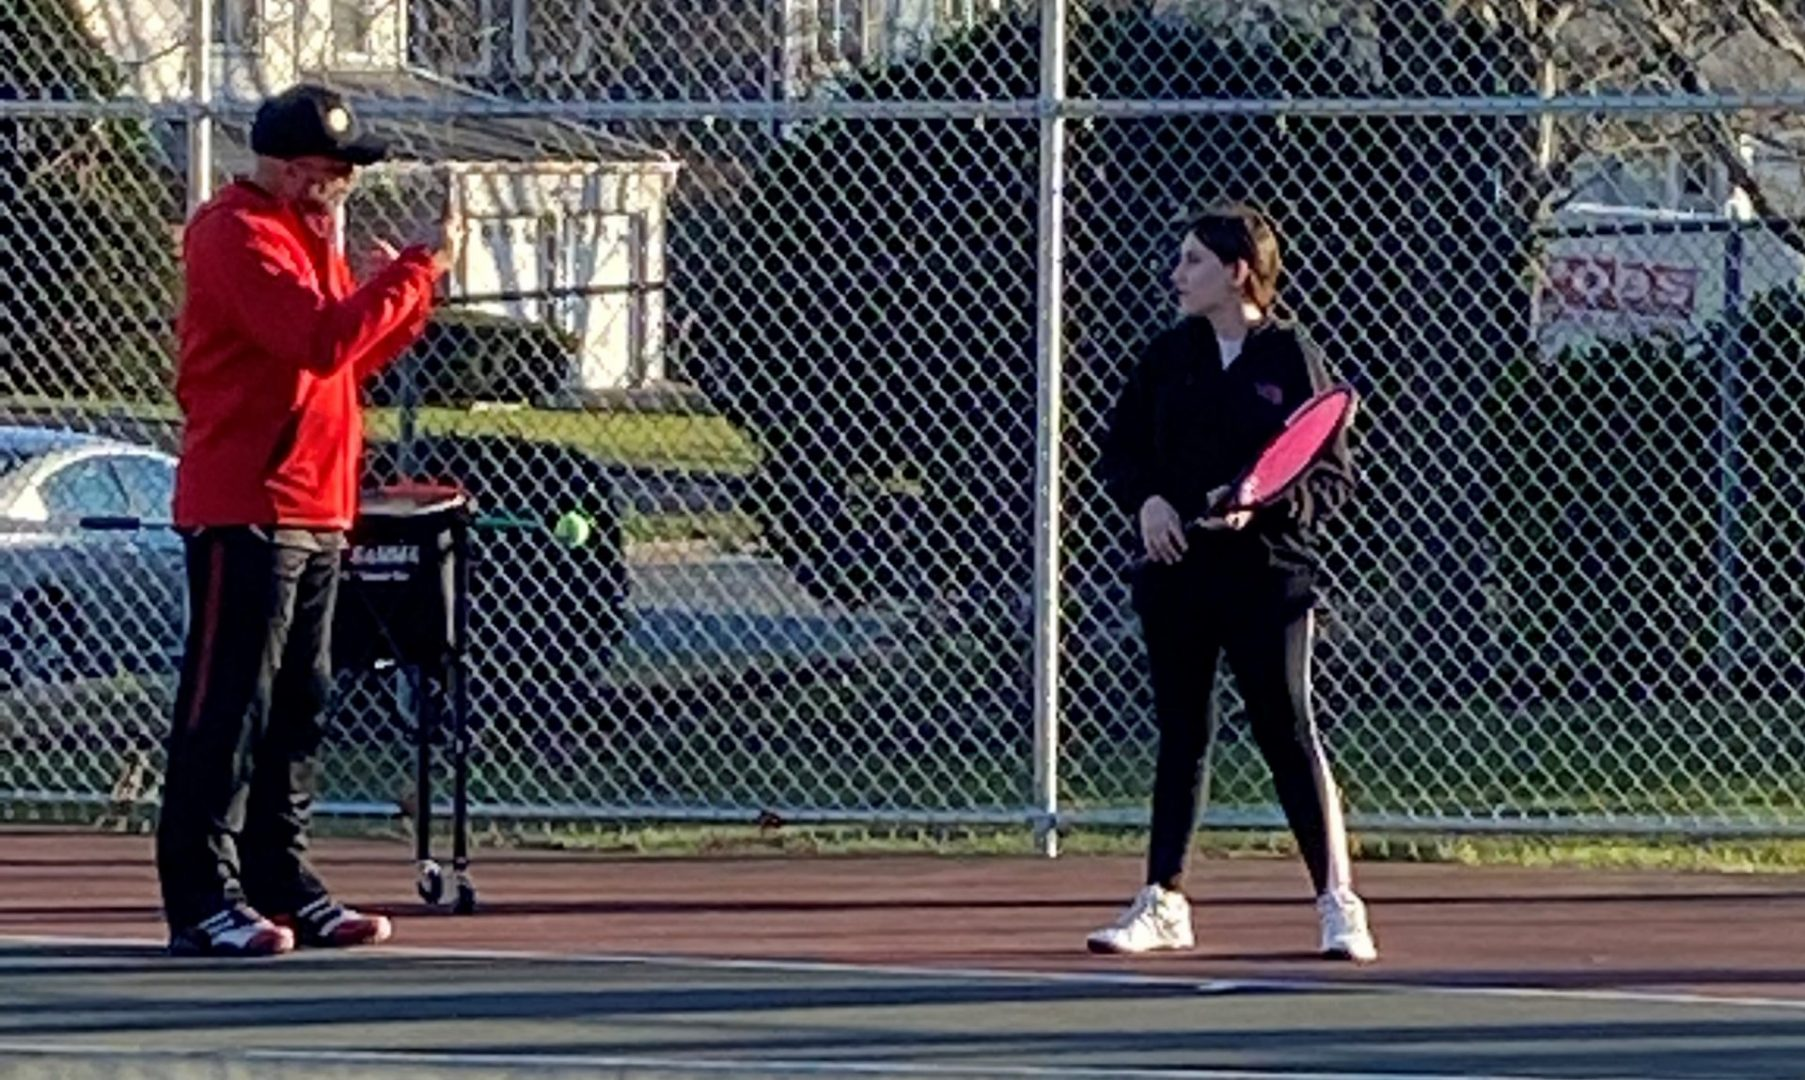 Renee Clark receiving tennis instruction on tennis court at Suffolk County Junior Tennis Association with an All Kids Play youth sports grant